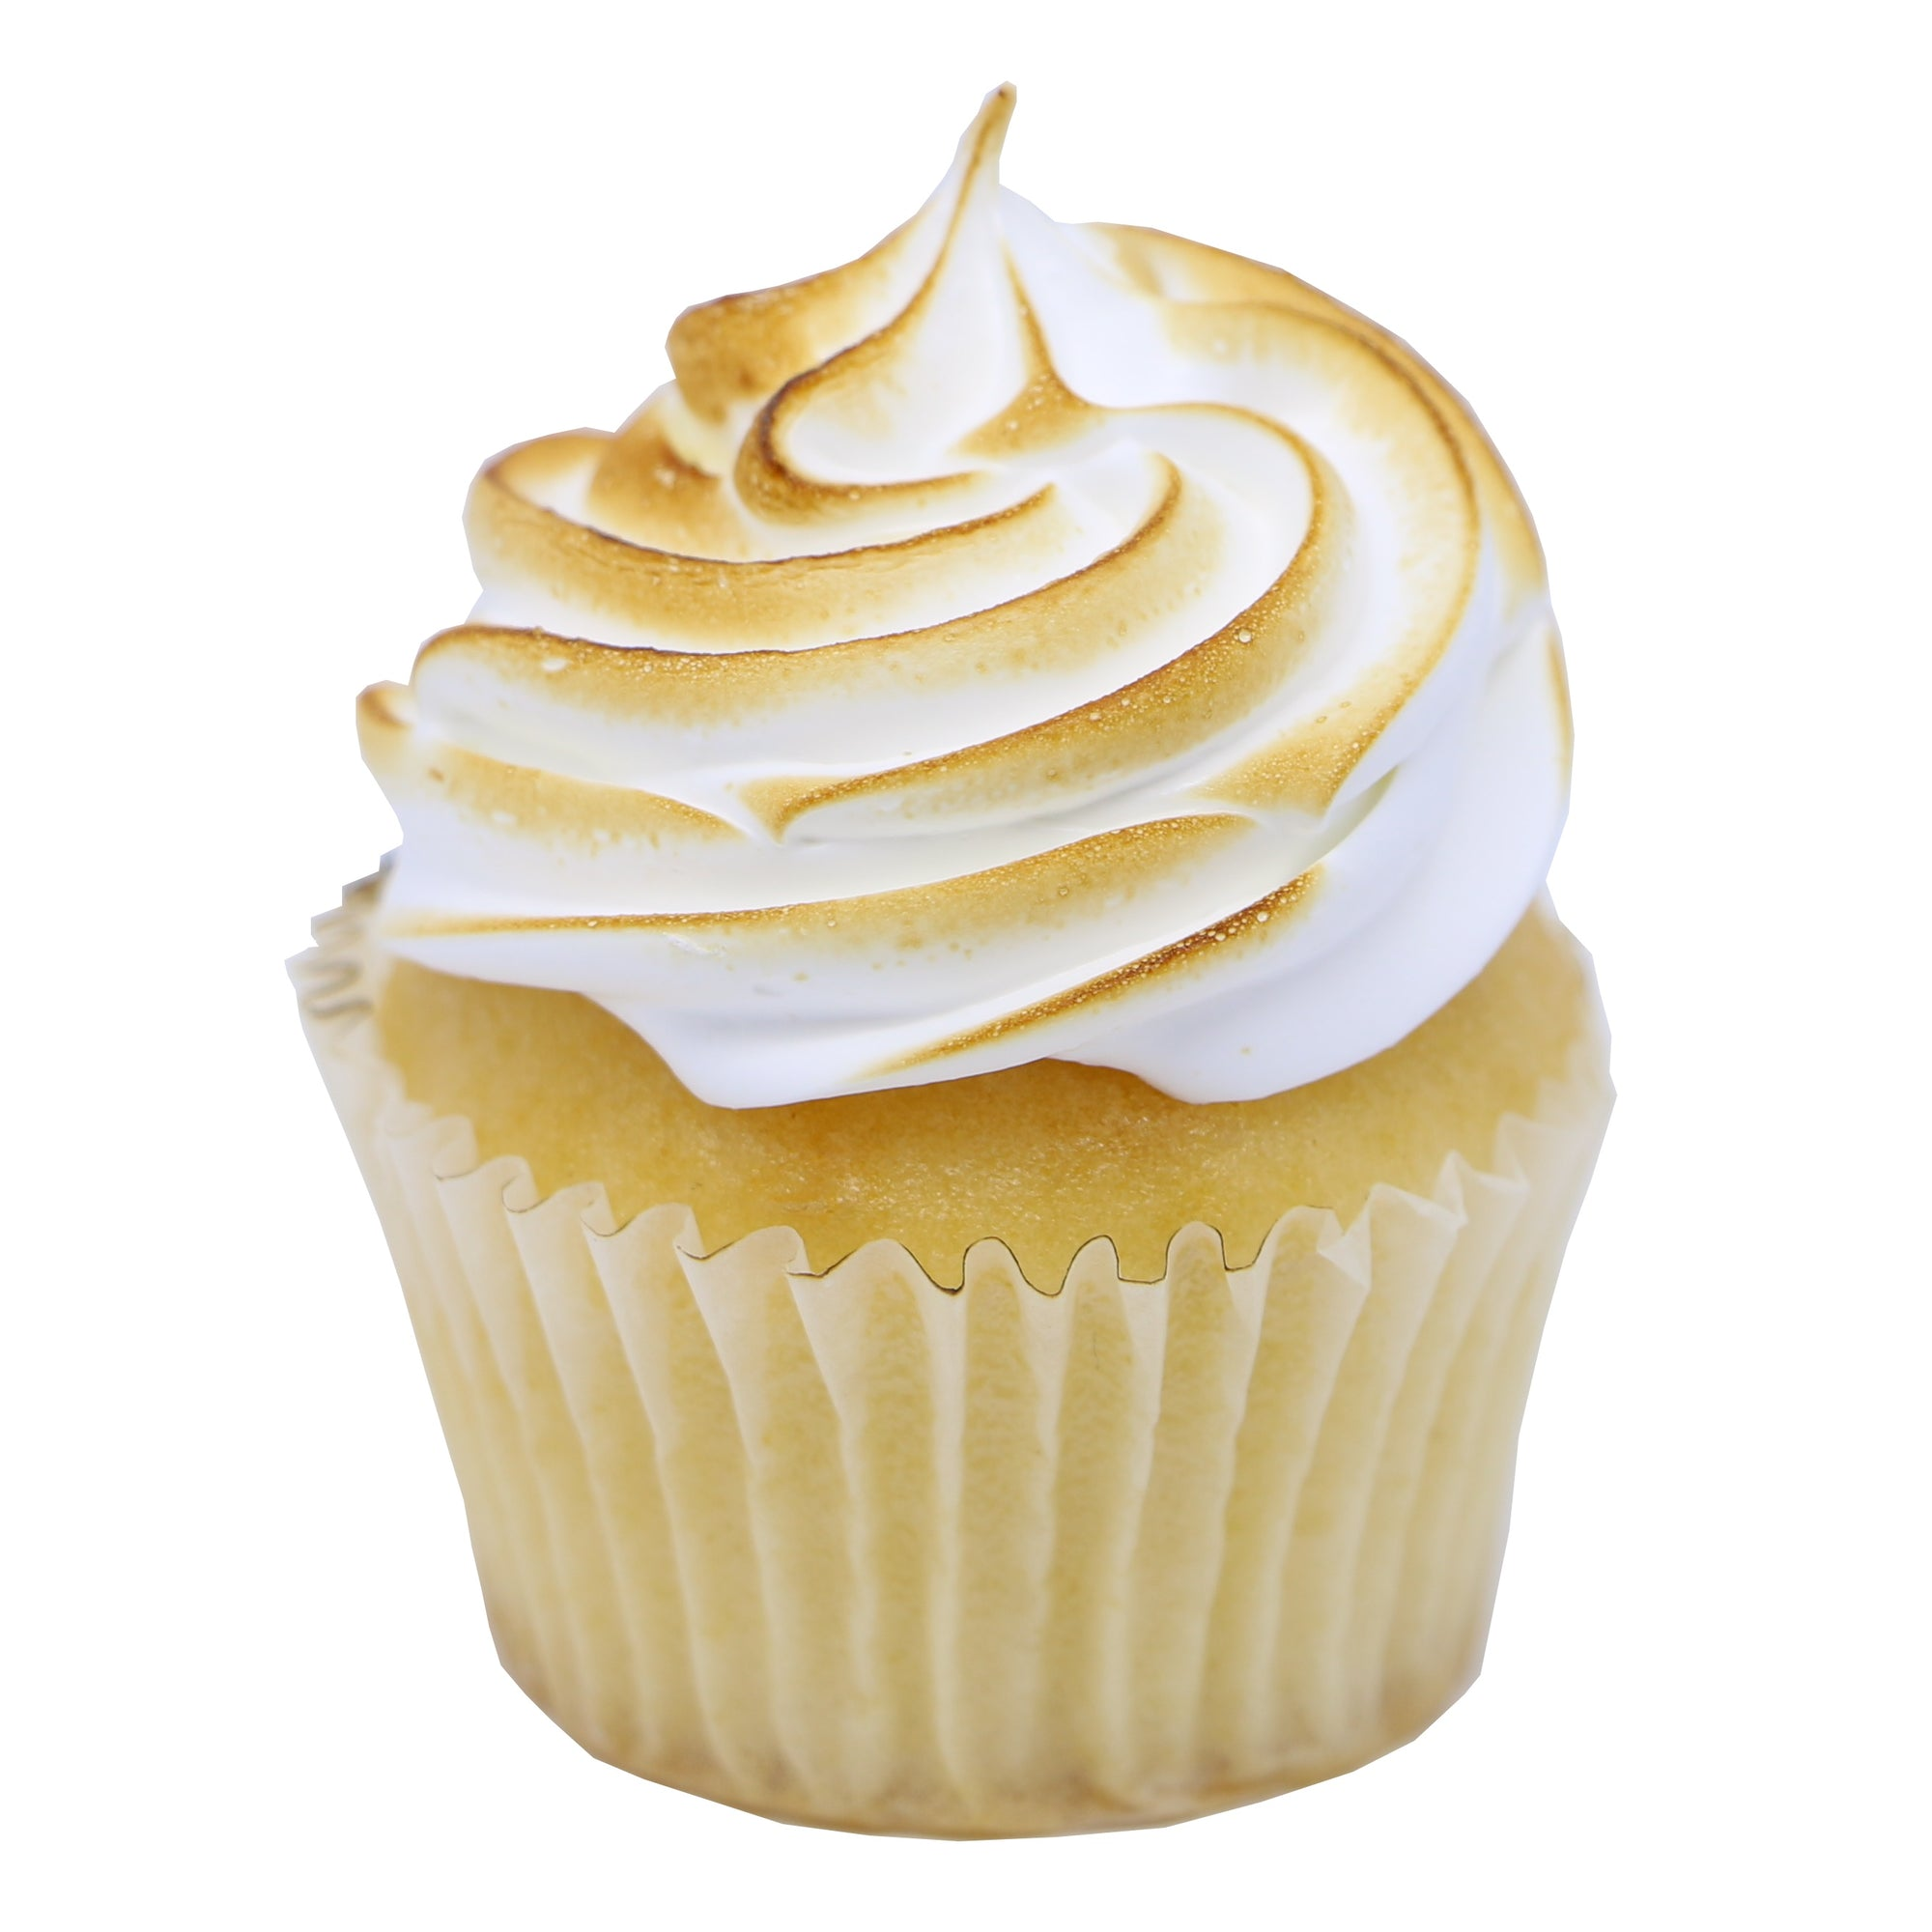 Mini Cupcake - Lemon Meringue - Treats2eat - Wedding & Birthday Party Dessert Catering Near Me